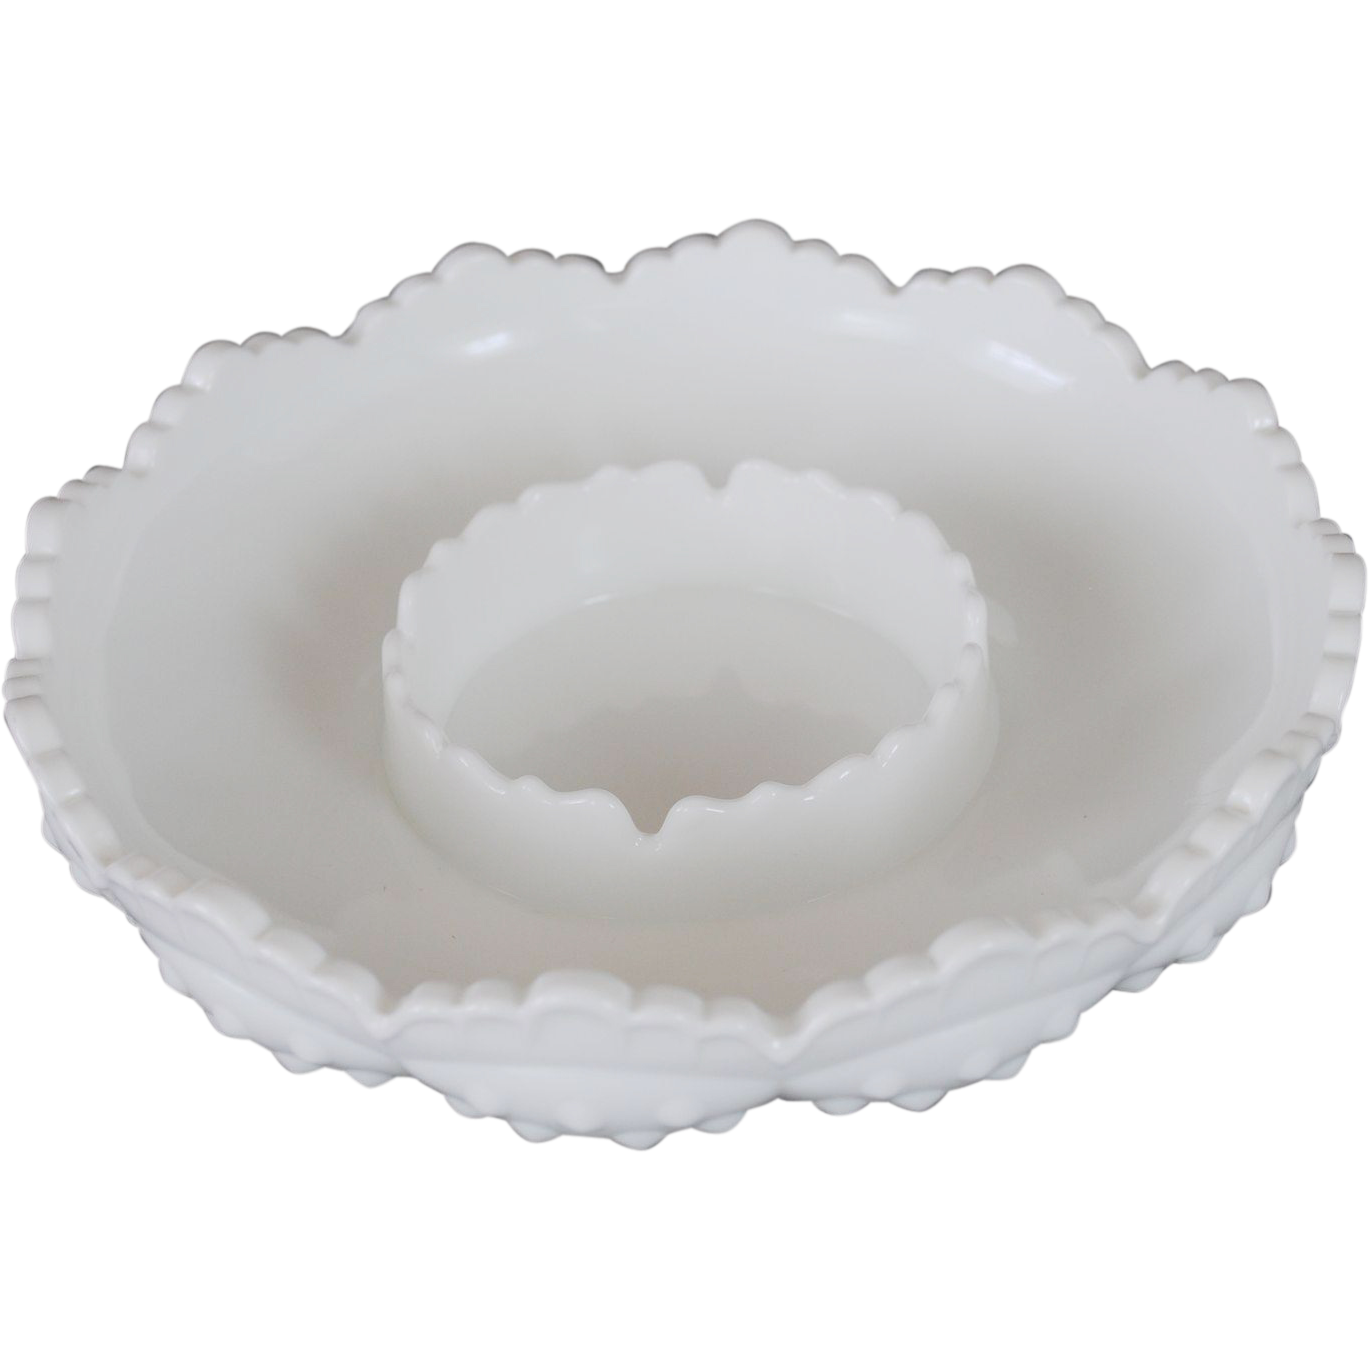 Fenton White Milk Glass Hobnail Ashtray/Dip Bowl